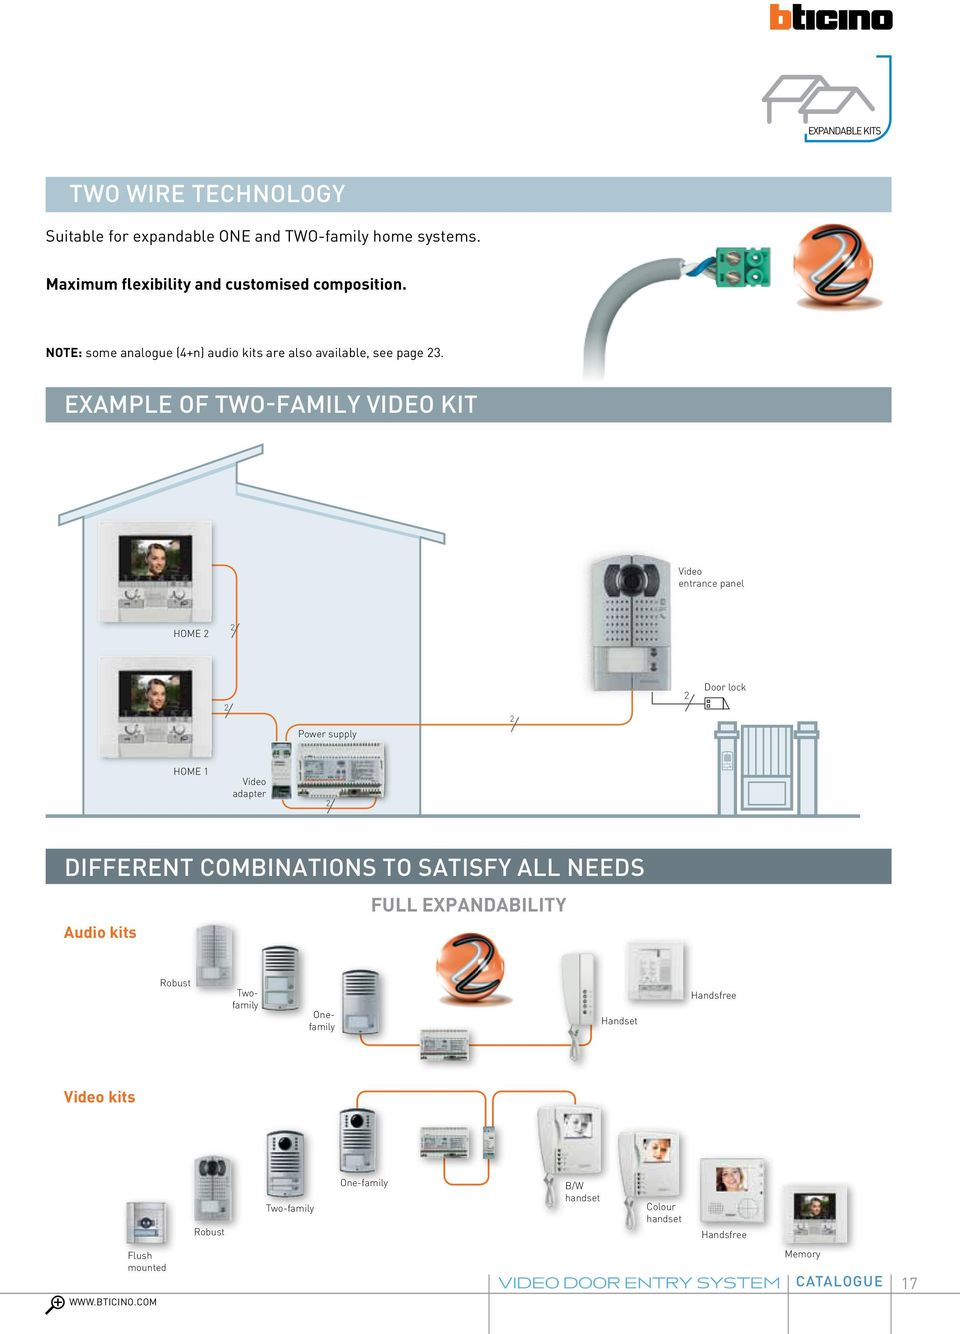 Video Door Entry System Offer Pdf Videx Smart 1 Wiring Diagram Example Of Two Family Kit Entrance Panel Home 2 Power Supply